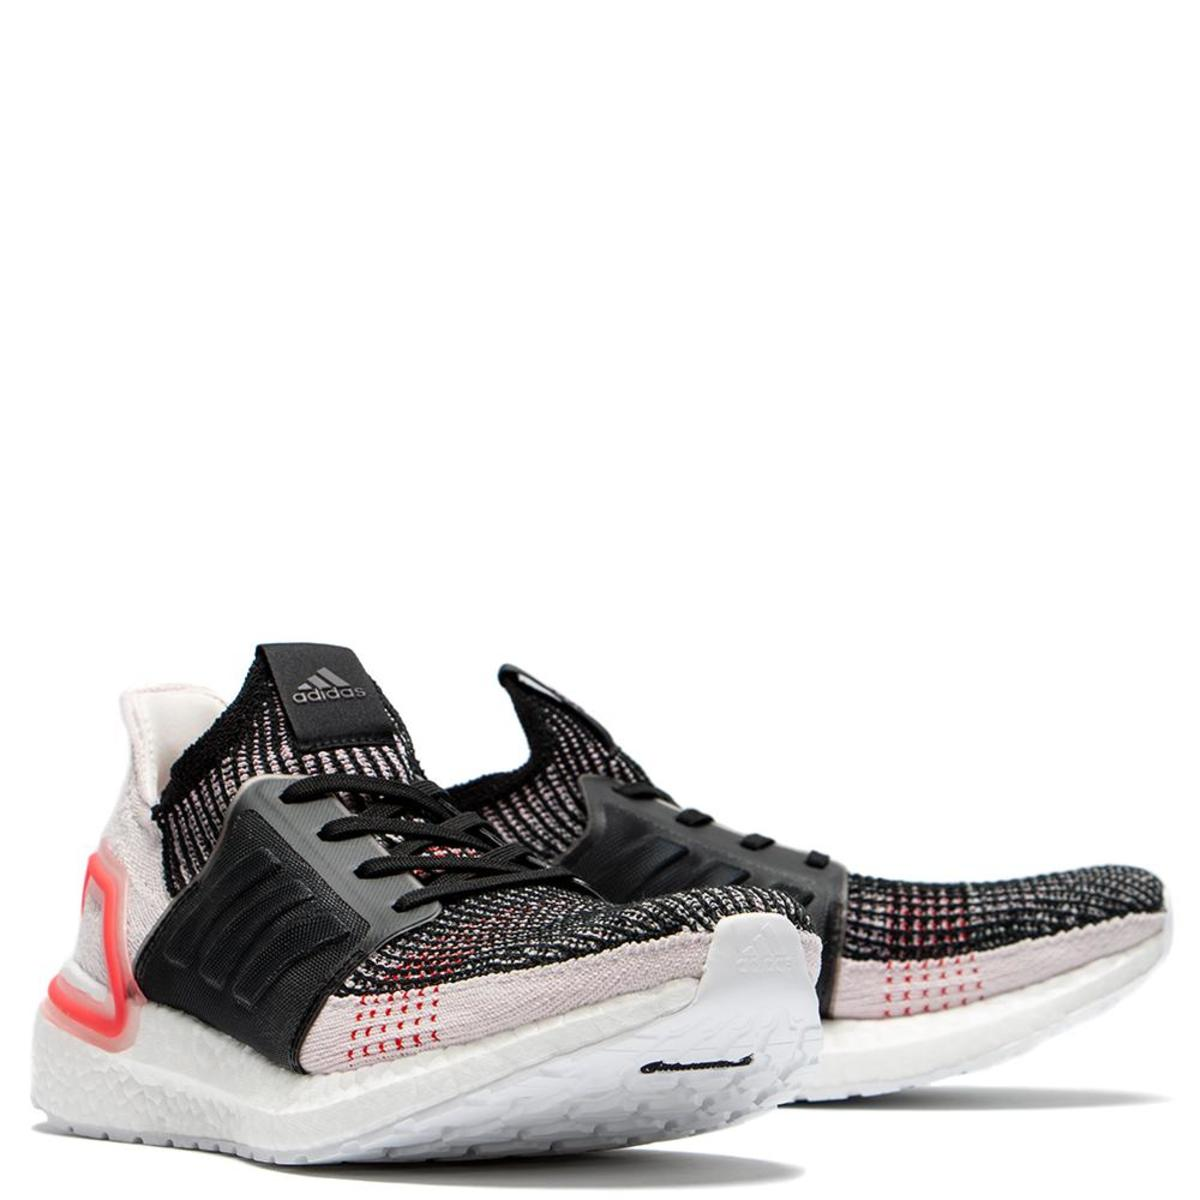 adidas Ultraboost 19 - Core Black Orchid Tint  4ae61b77a